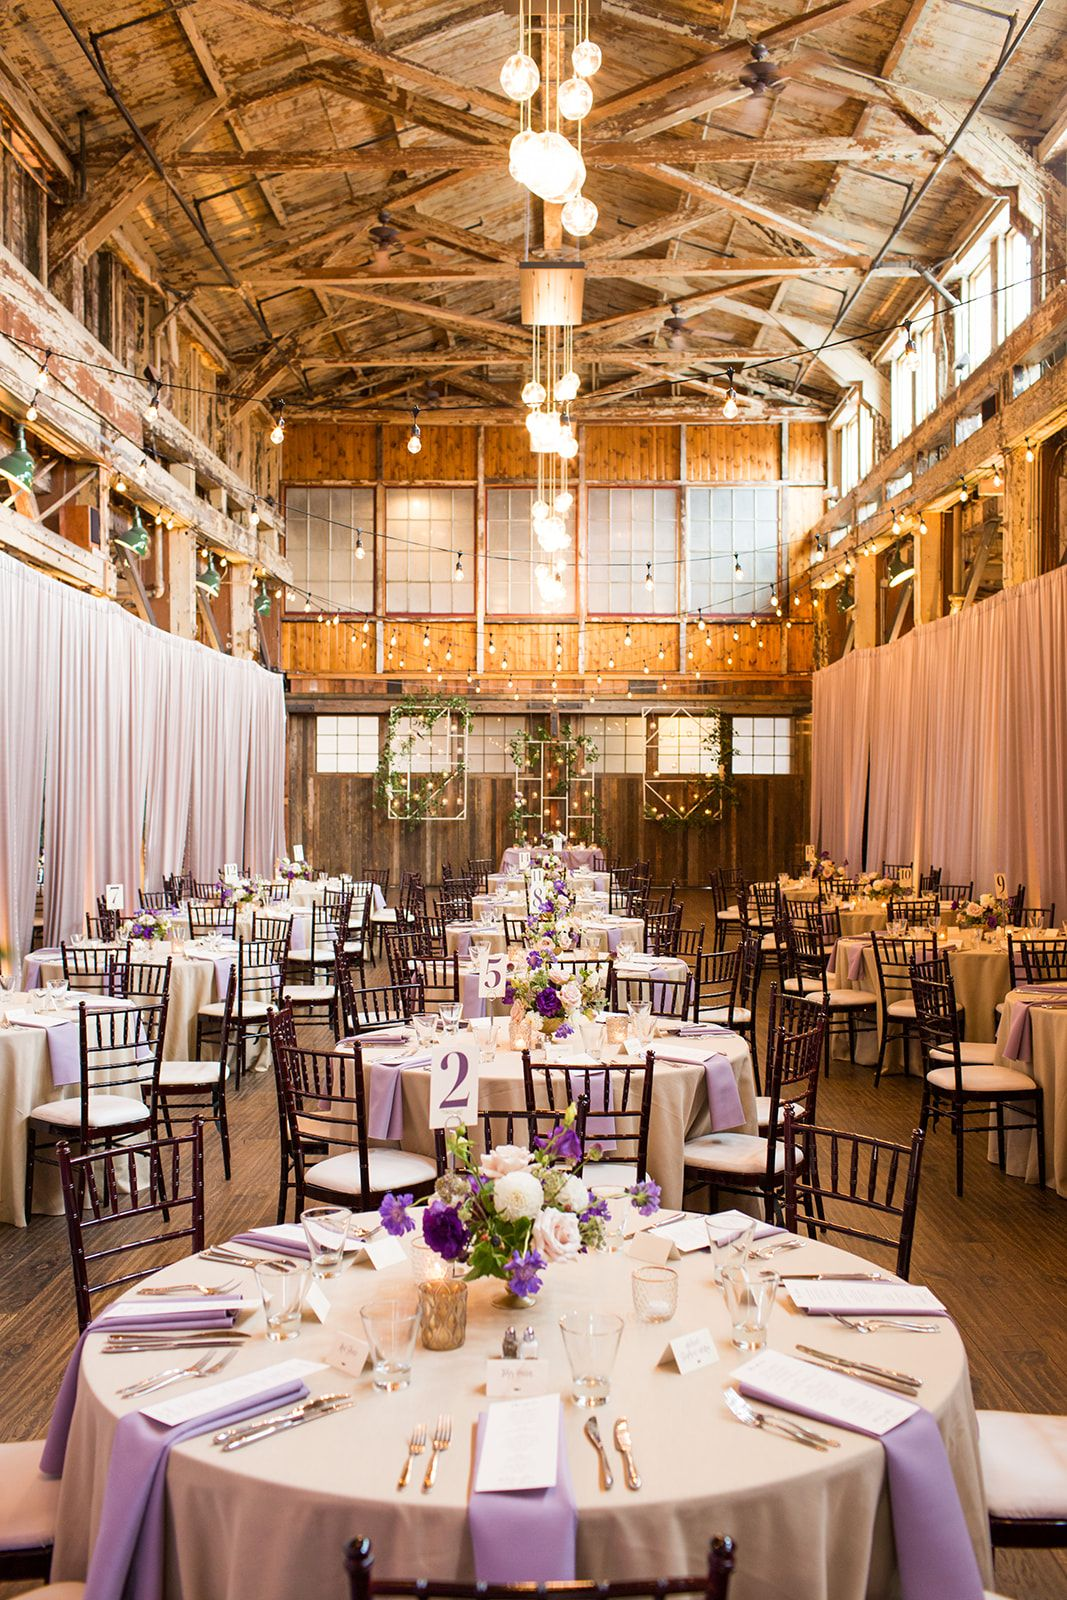 Rustic Sodo Park Wedding By Jen Leslie Events In 2020 Seattle Wedding Venues Wedding Reception Rooms Sodo Park Wedding